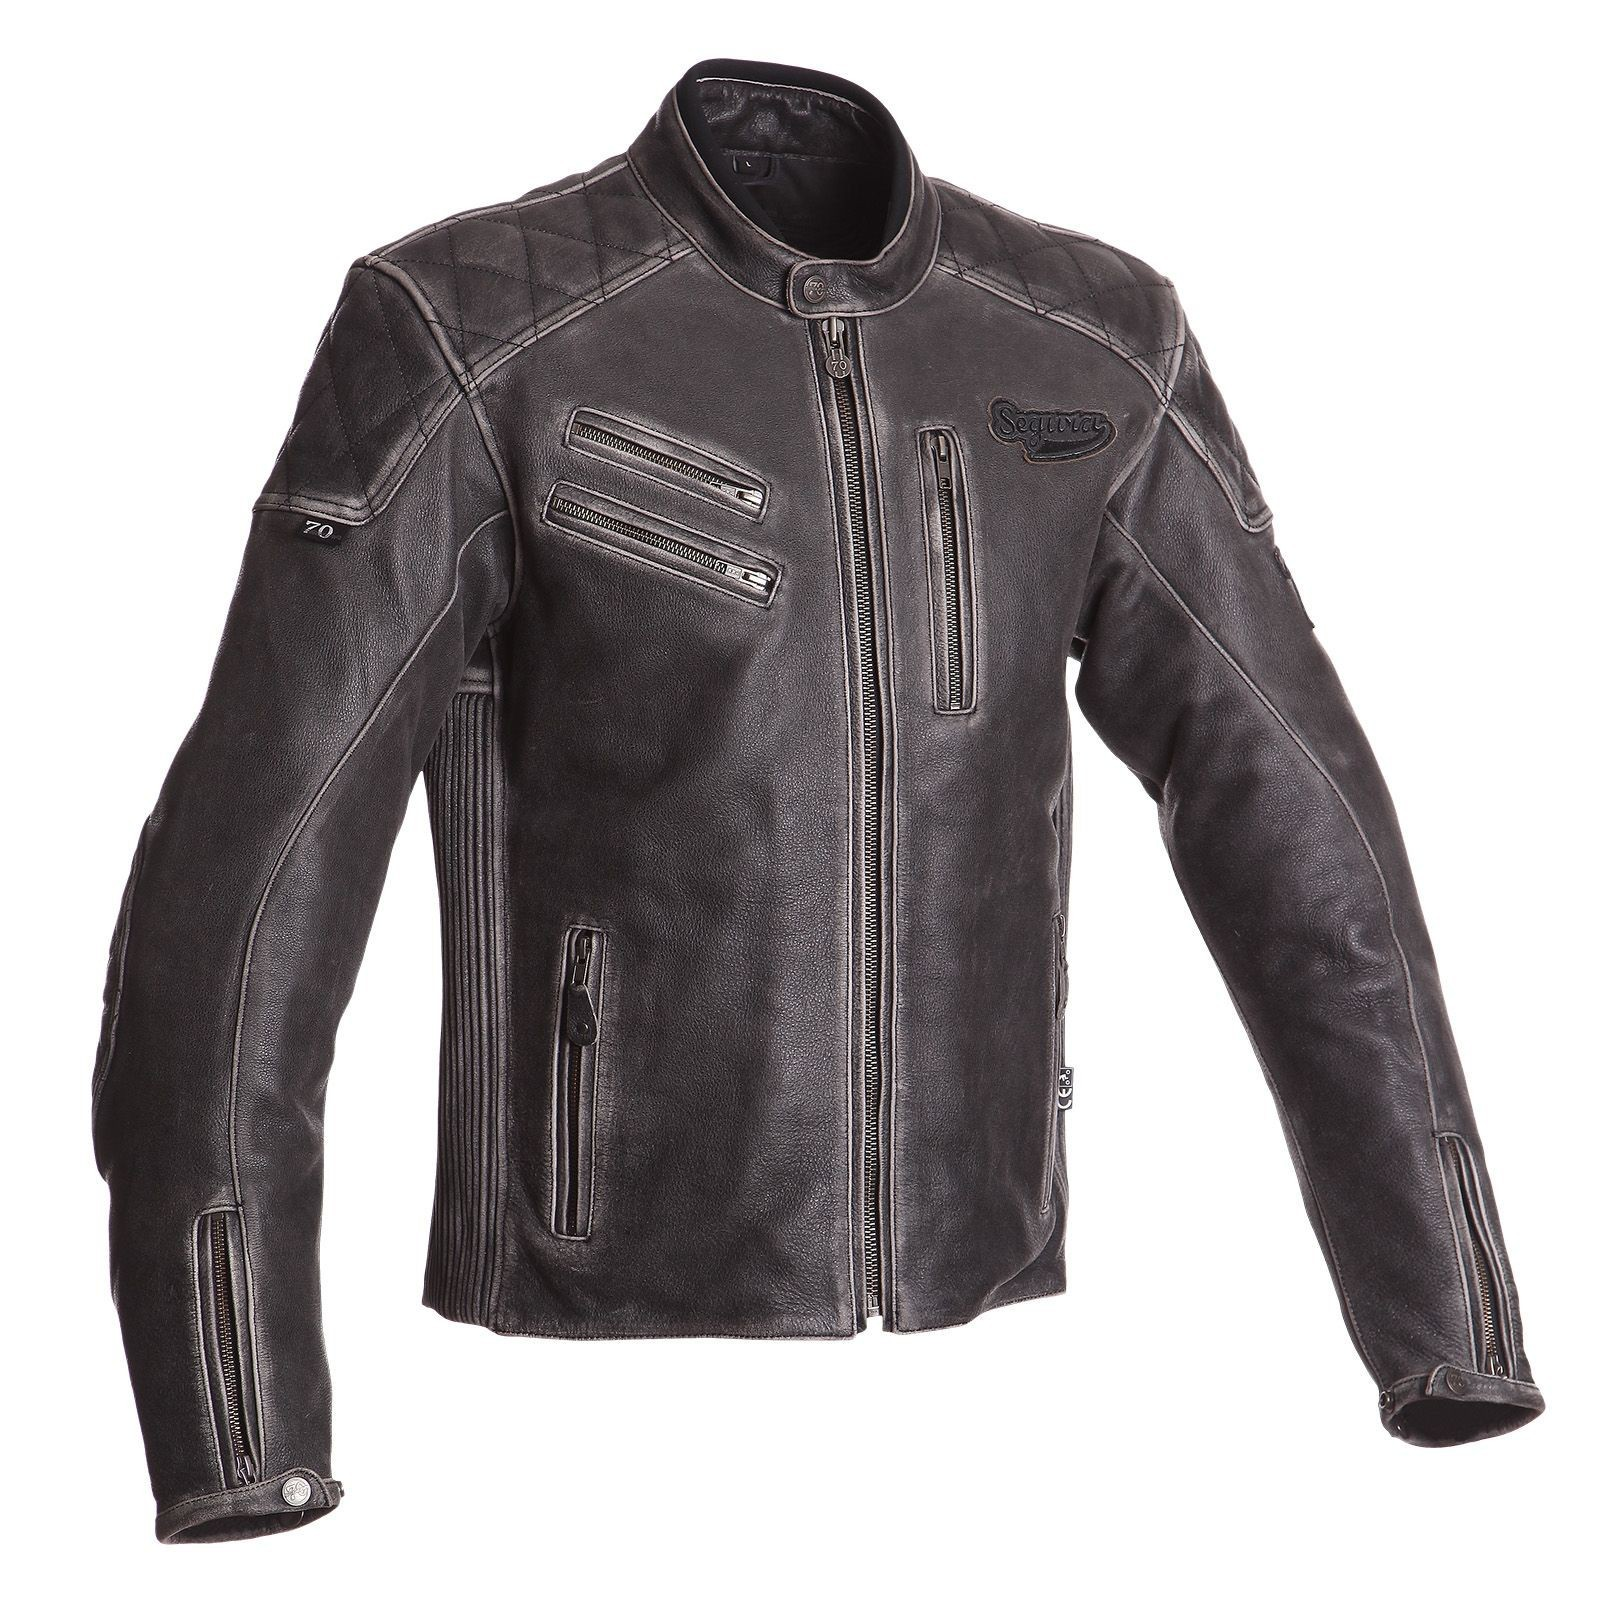 Manufacturer producer leather jackets | Europageshttps://m.europages.co.uk › companies › leather jackets leather jackets suppliers